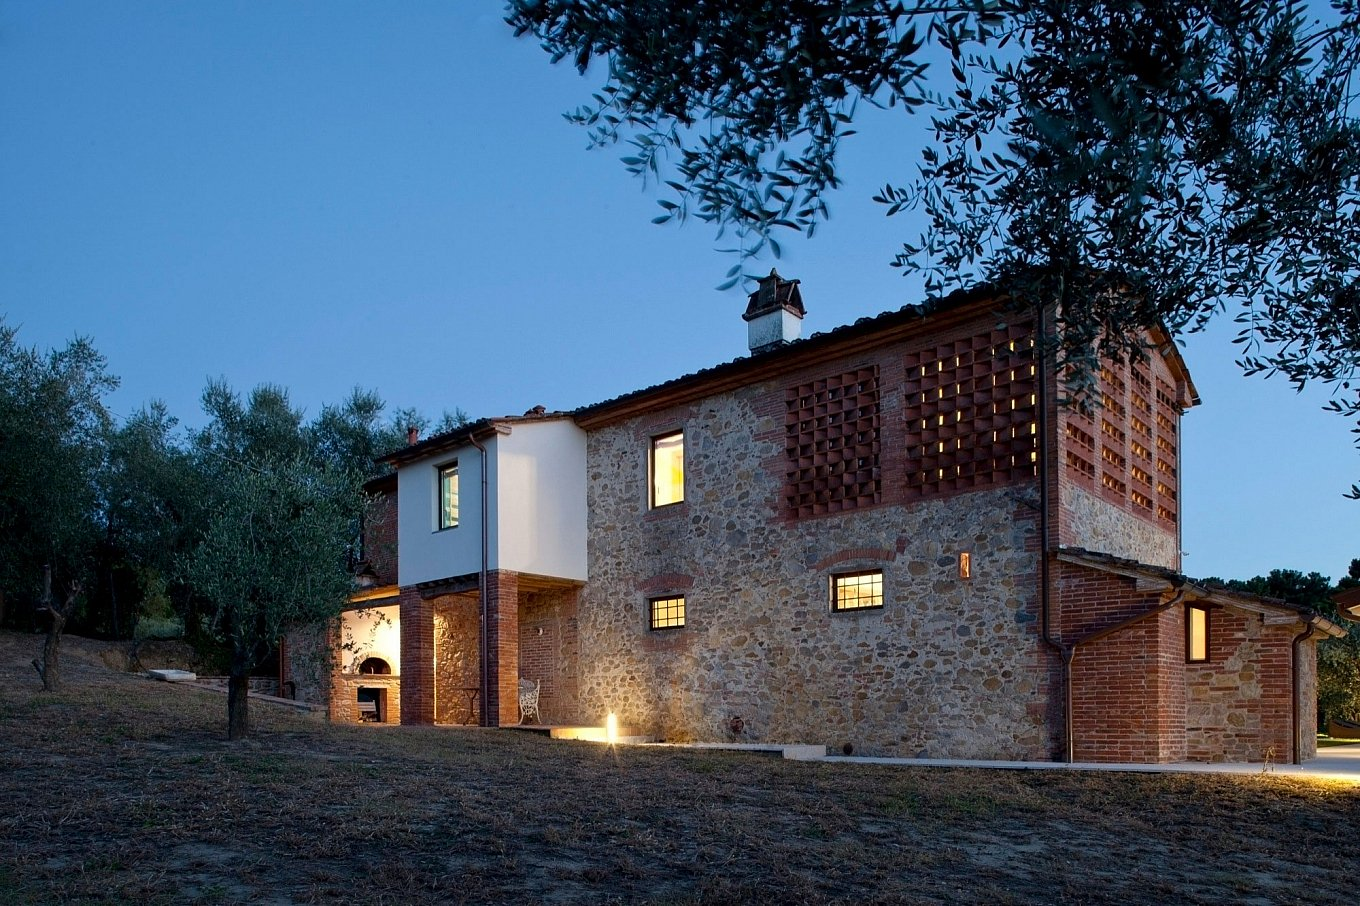 renovated-19th-century-country-house-in-tuscany-20